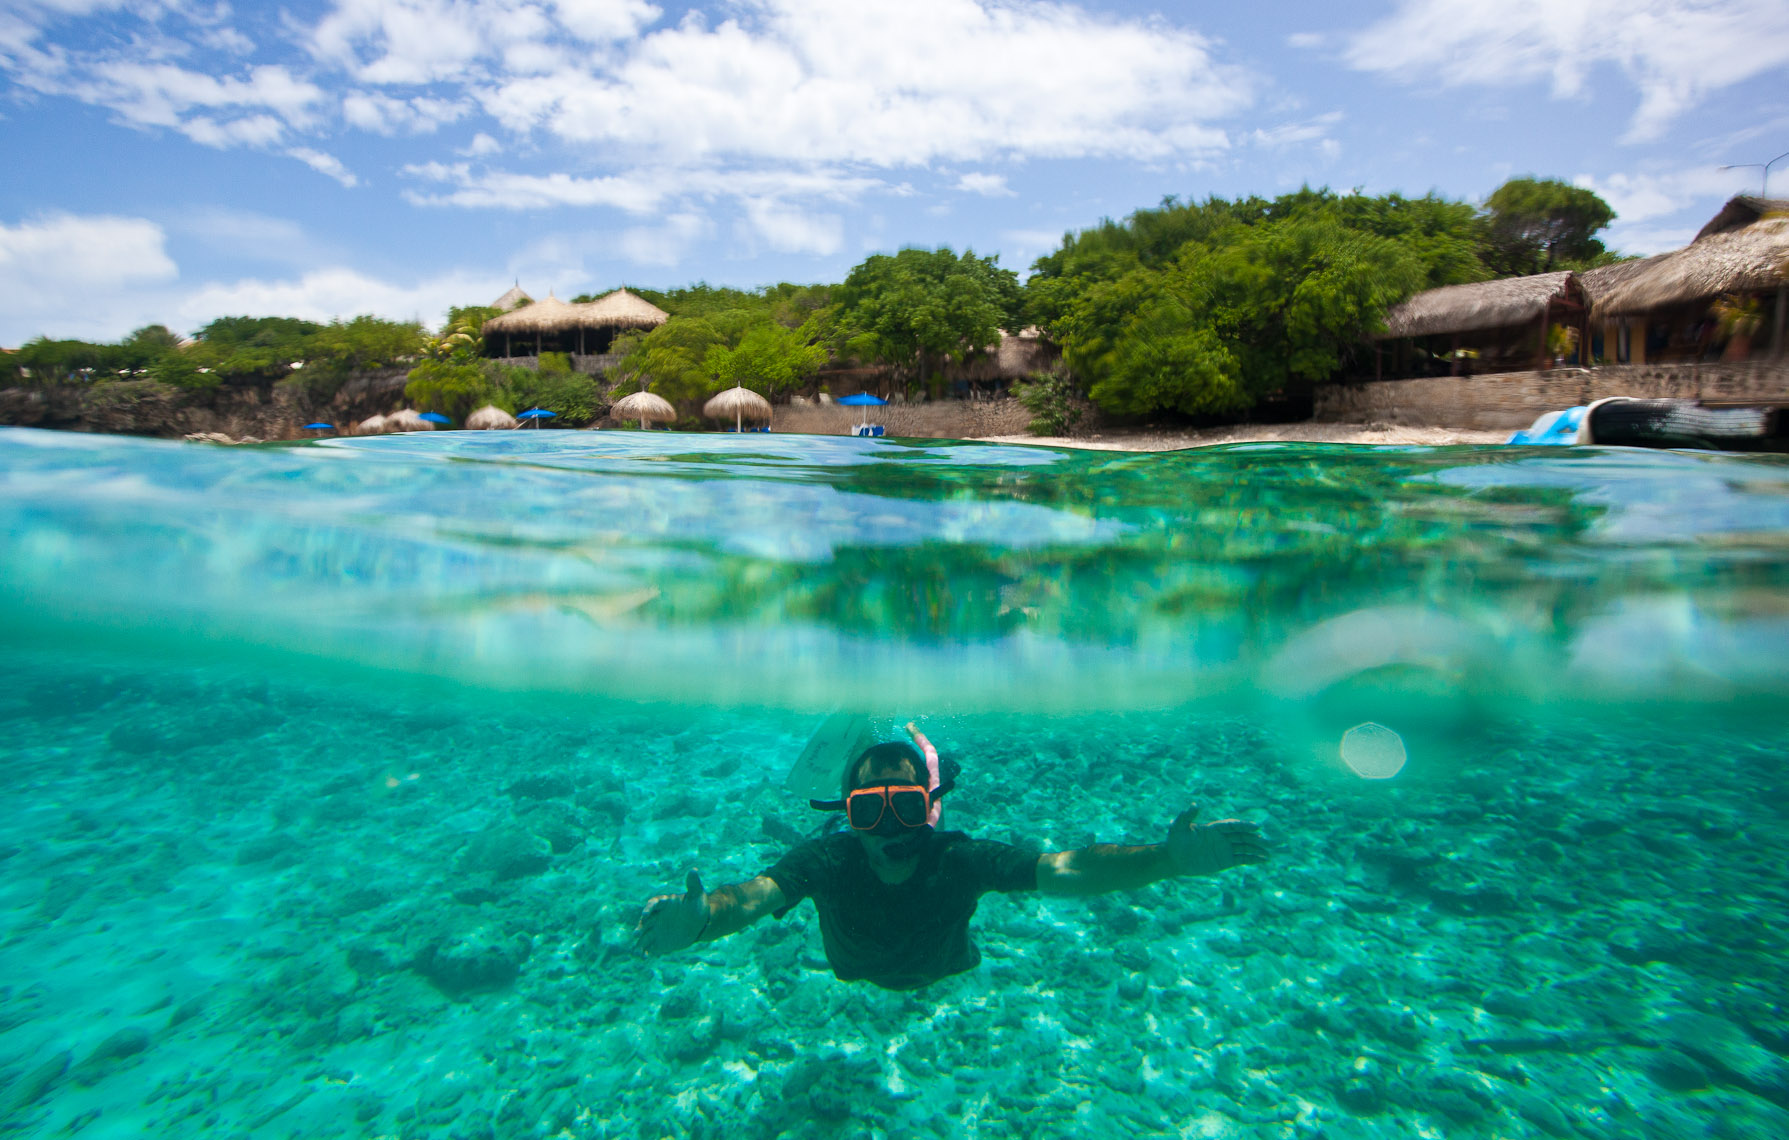 Snorkeling Kura Hulanda Lodge & Beach Club